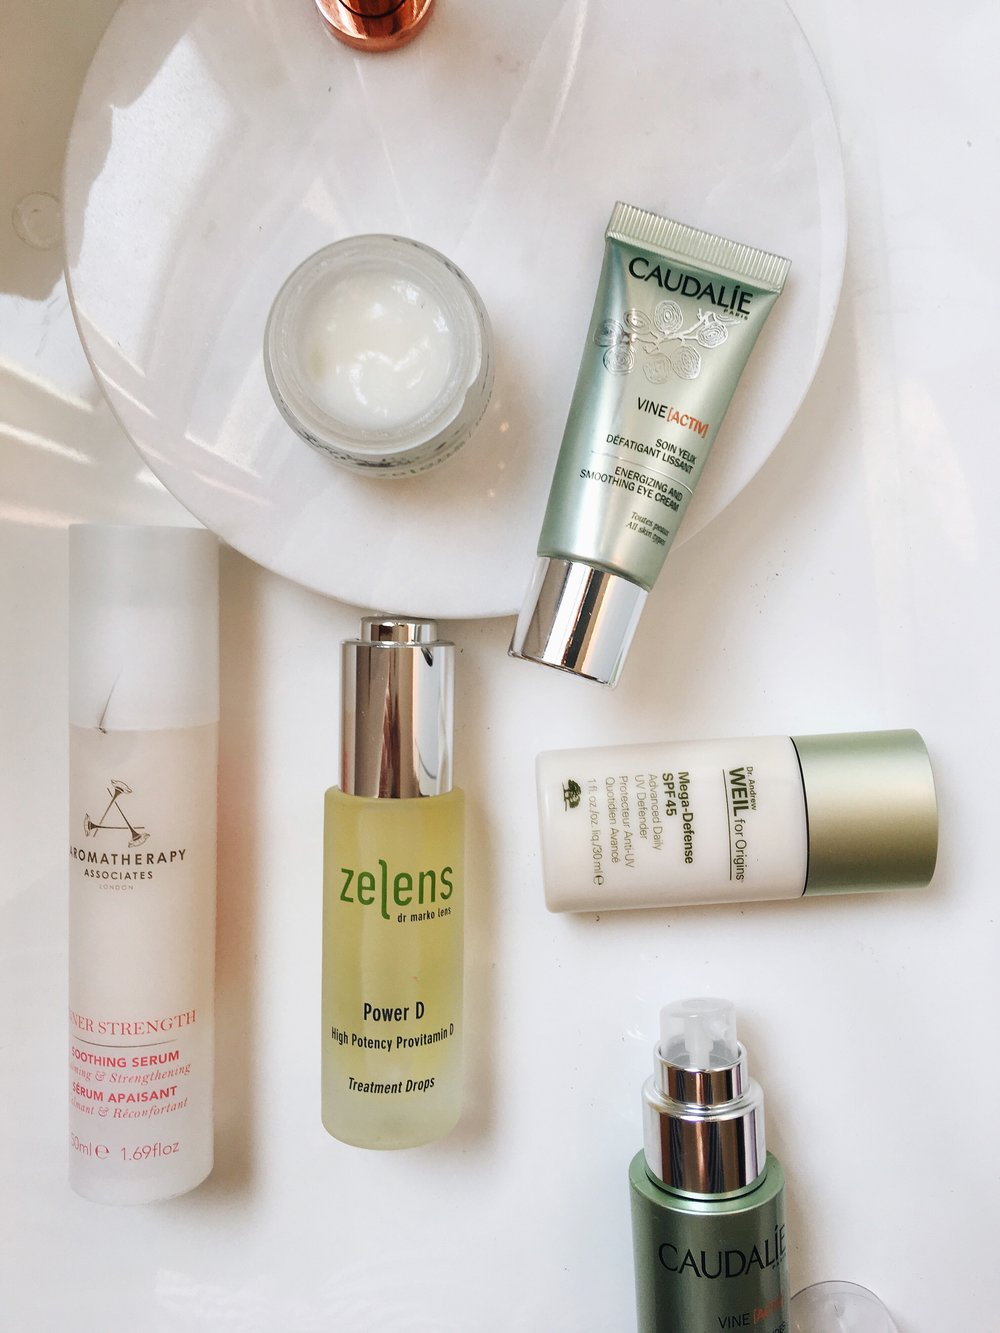 Anti-Pollution skincare is the latest beauty buzz and what everyone and every brand is talking about. Pollution levels in London are flying high and on the rise, making it imperative that we add anti-pollution products into our existing routine to ensure a healthy, youthful complexion is maintained.   - Along with routine, diet and UV rays, pollution plays a huge factor in our skins health, appearance and survival. Us city goers who live, sleep and breathe in the London pollution are exposing our skin to free radicals, pollutants and environmental aggressors each day, causing dehydration, premature ageing and a tired, dull, fatigued complexion. Below are my five best anti-pollution products for prevention and cure...